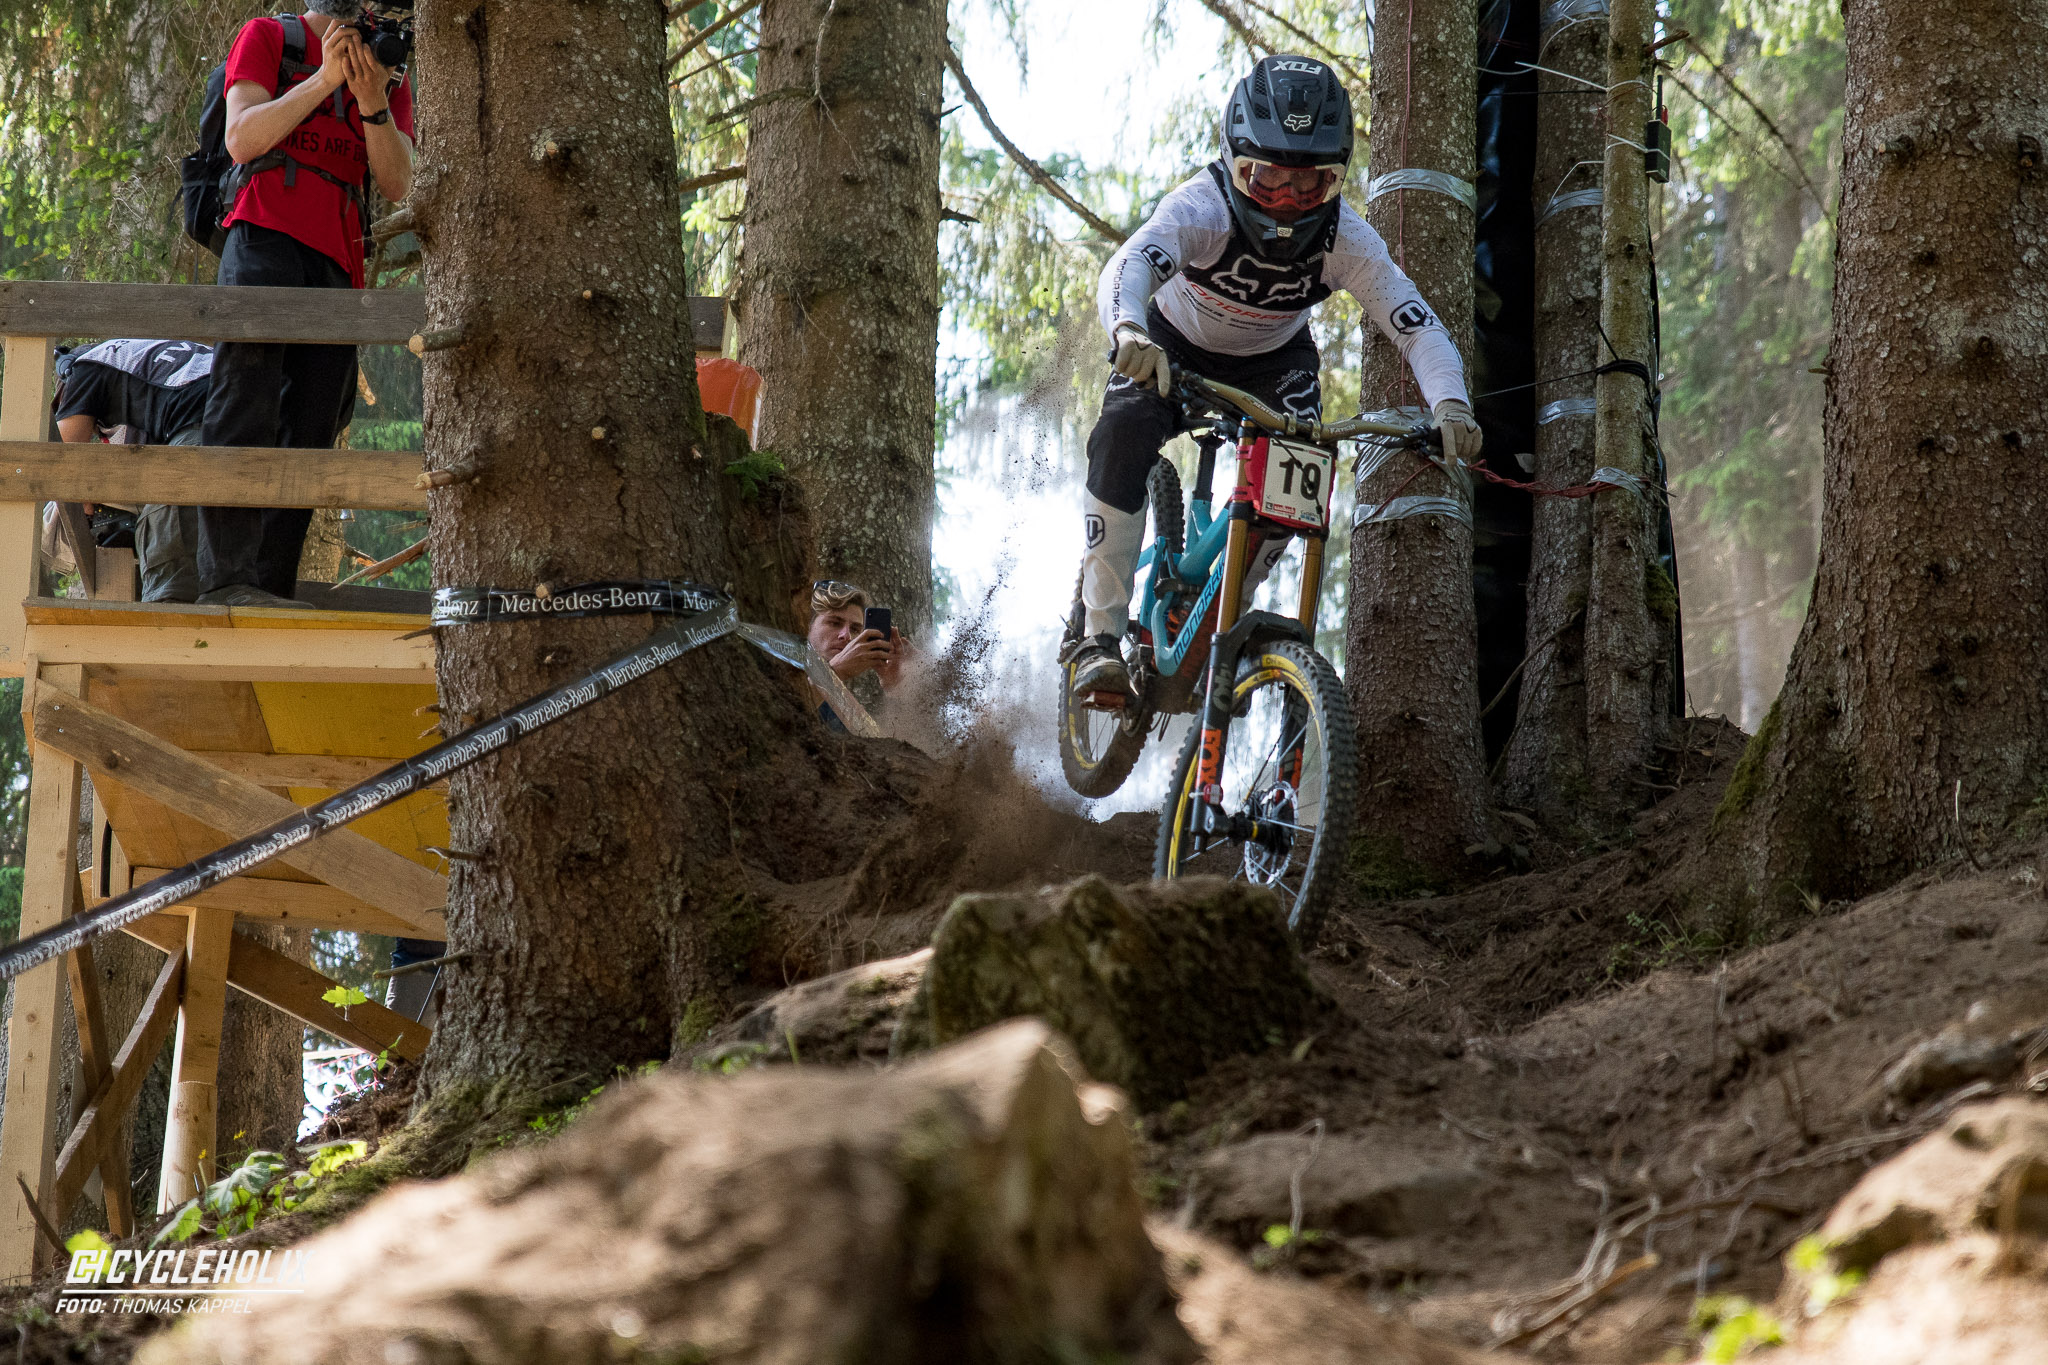 2019 Downhill Worldcup Leogang Finale Action 12 Cycleholix